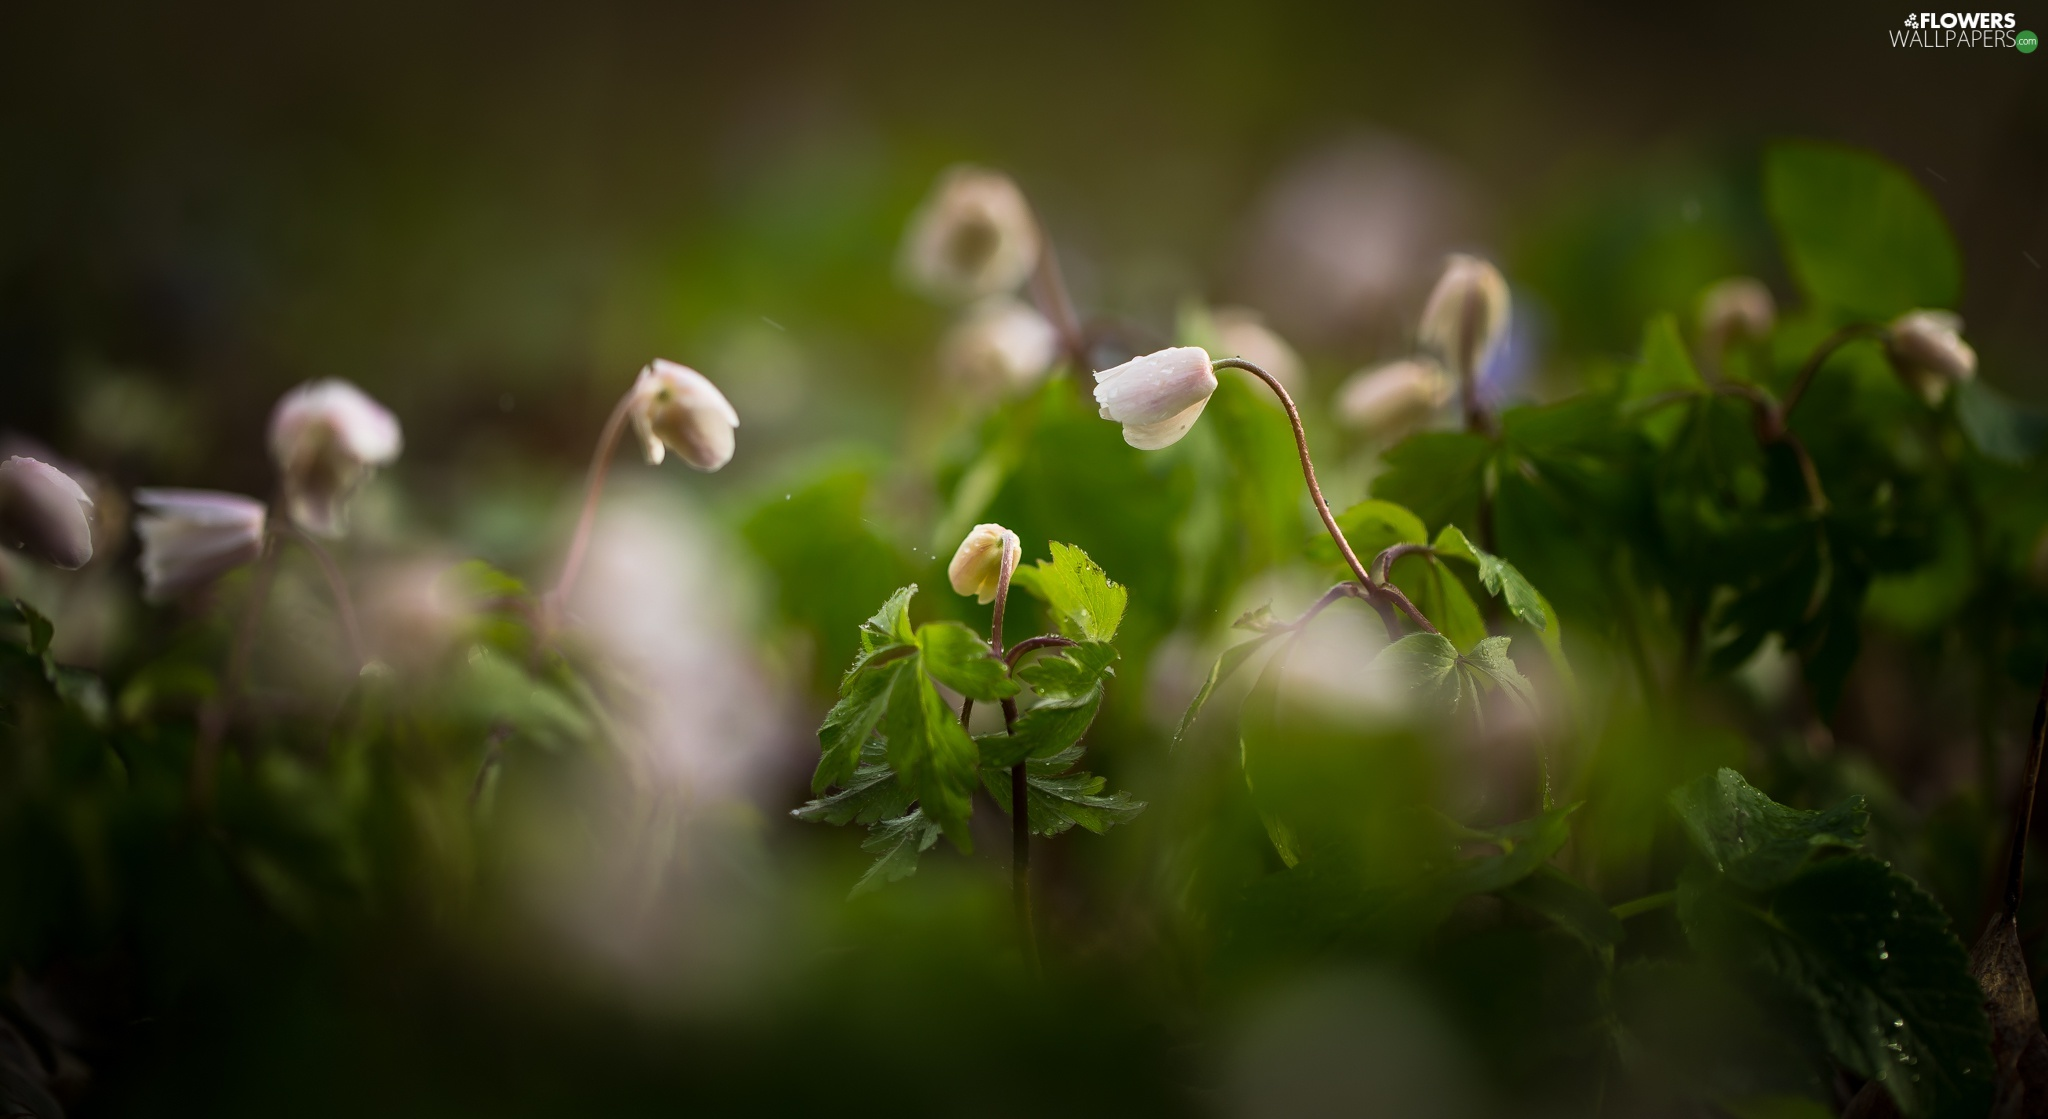 Flowers, Anemones, Leaf, White